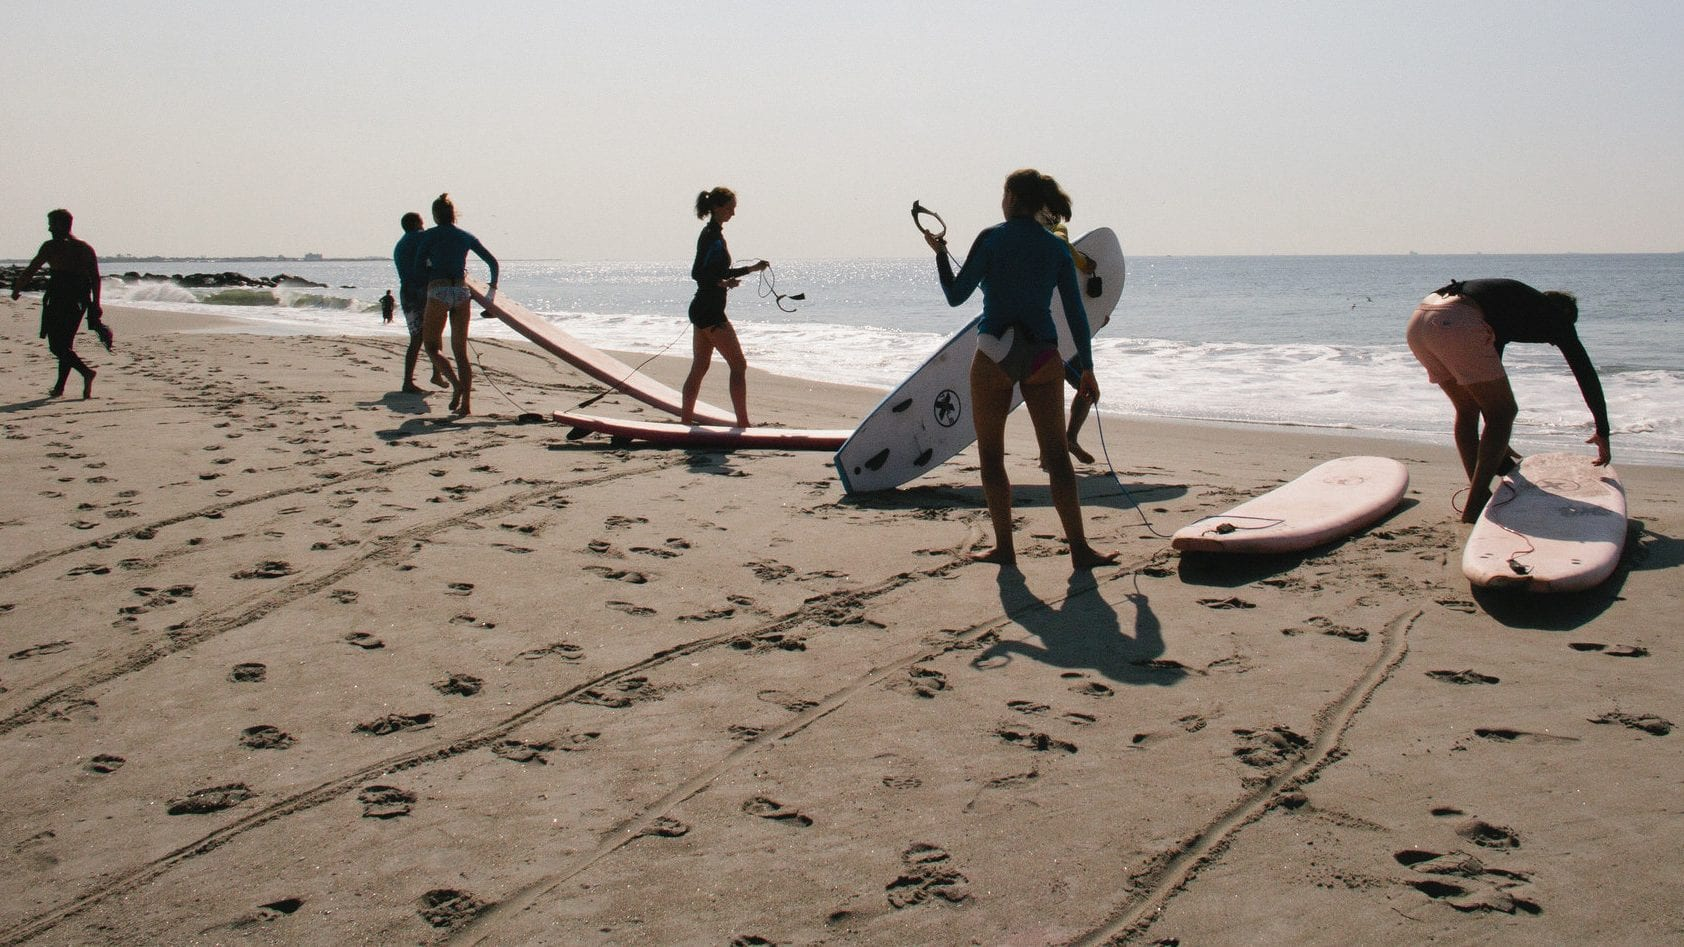 Surfing in the Rockaways